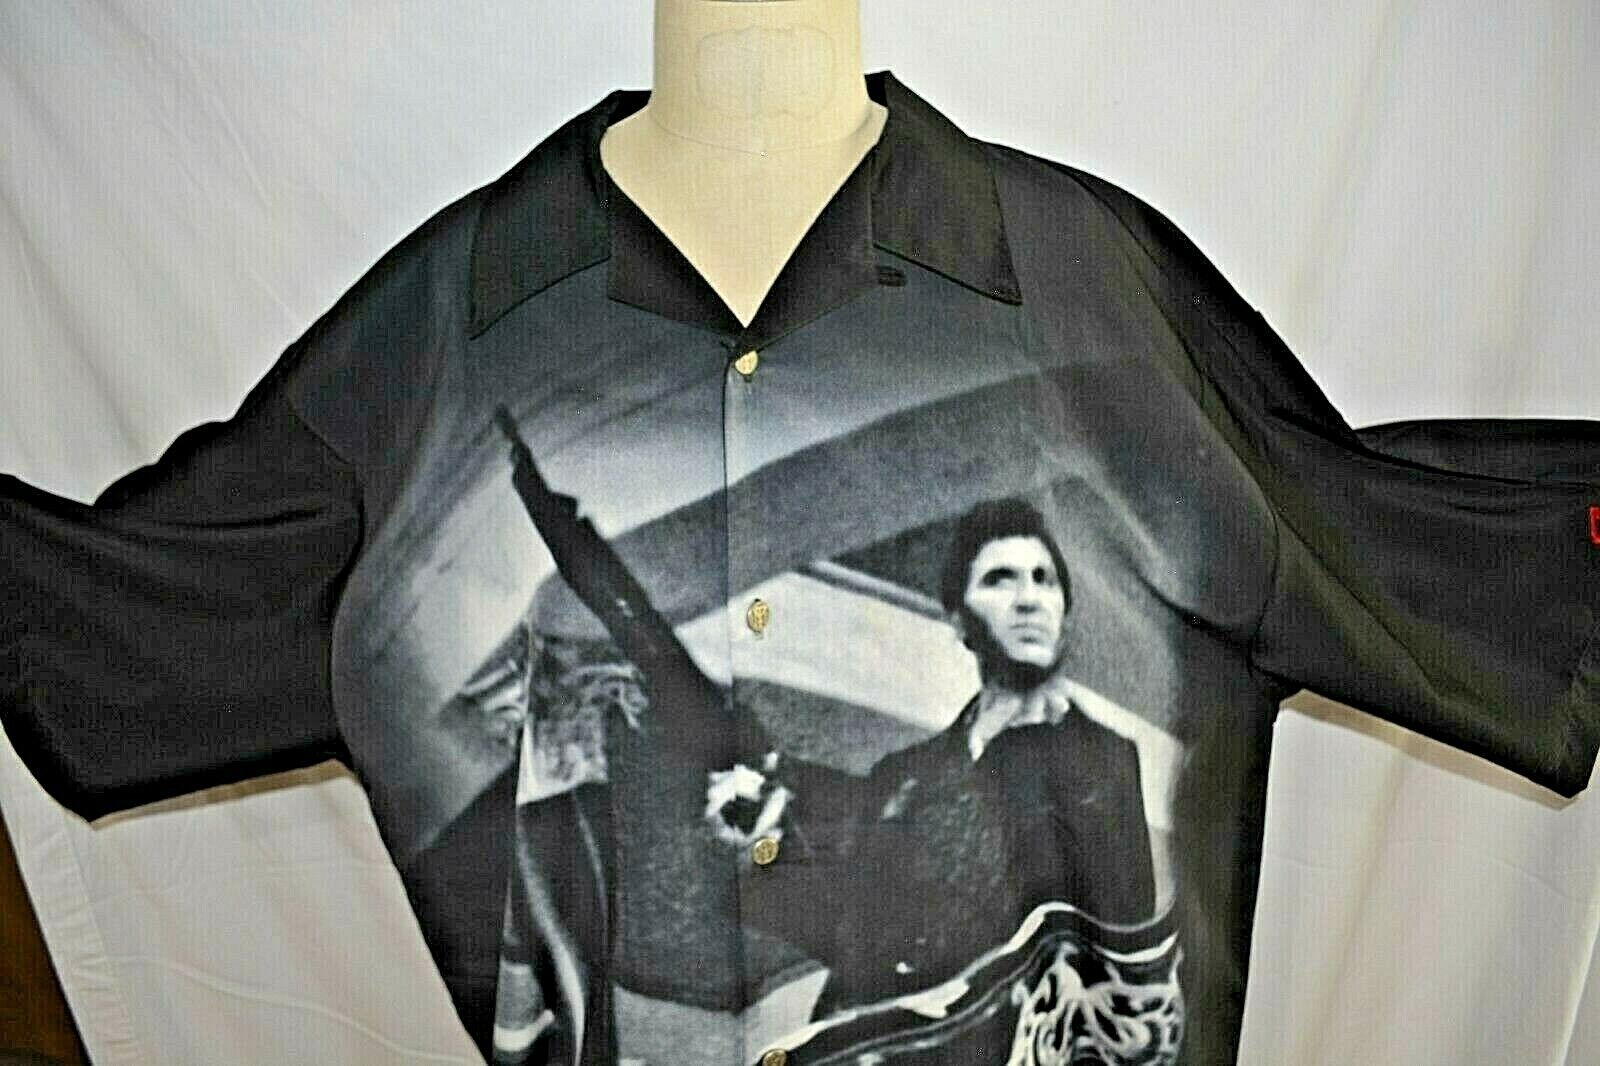 Scarface Shirt Button Down Collared XXXL Dragonfly Clothing Company  - $89.99